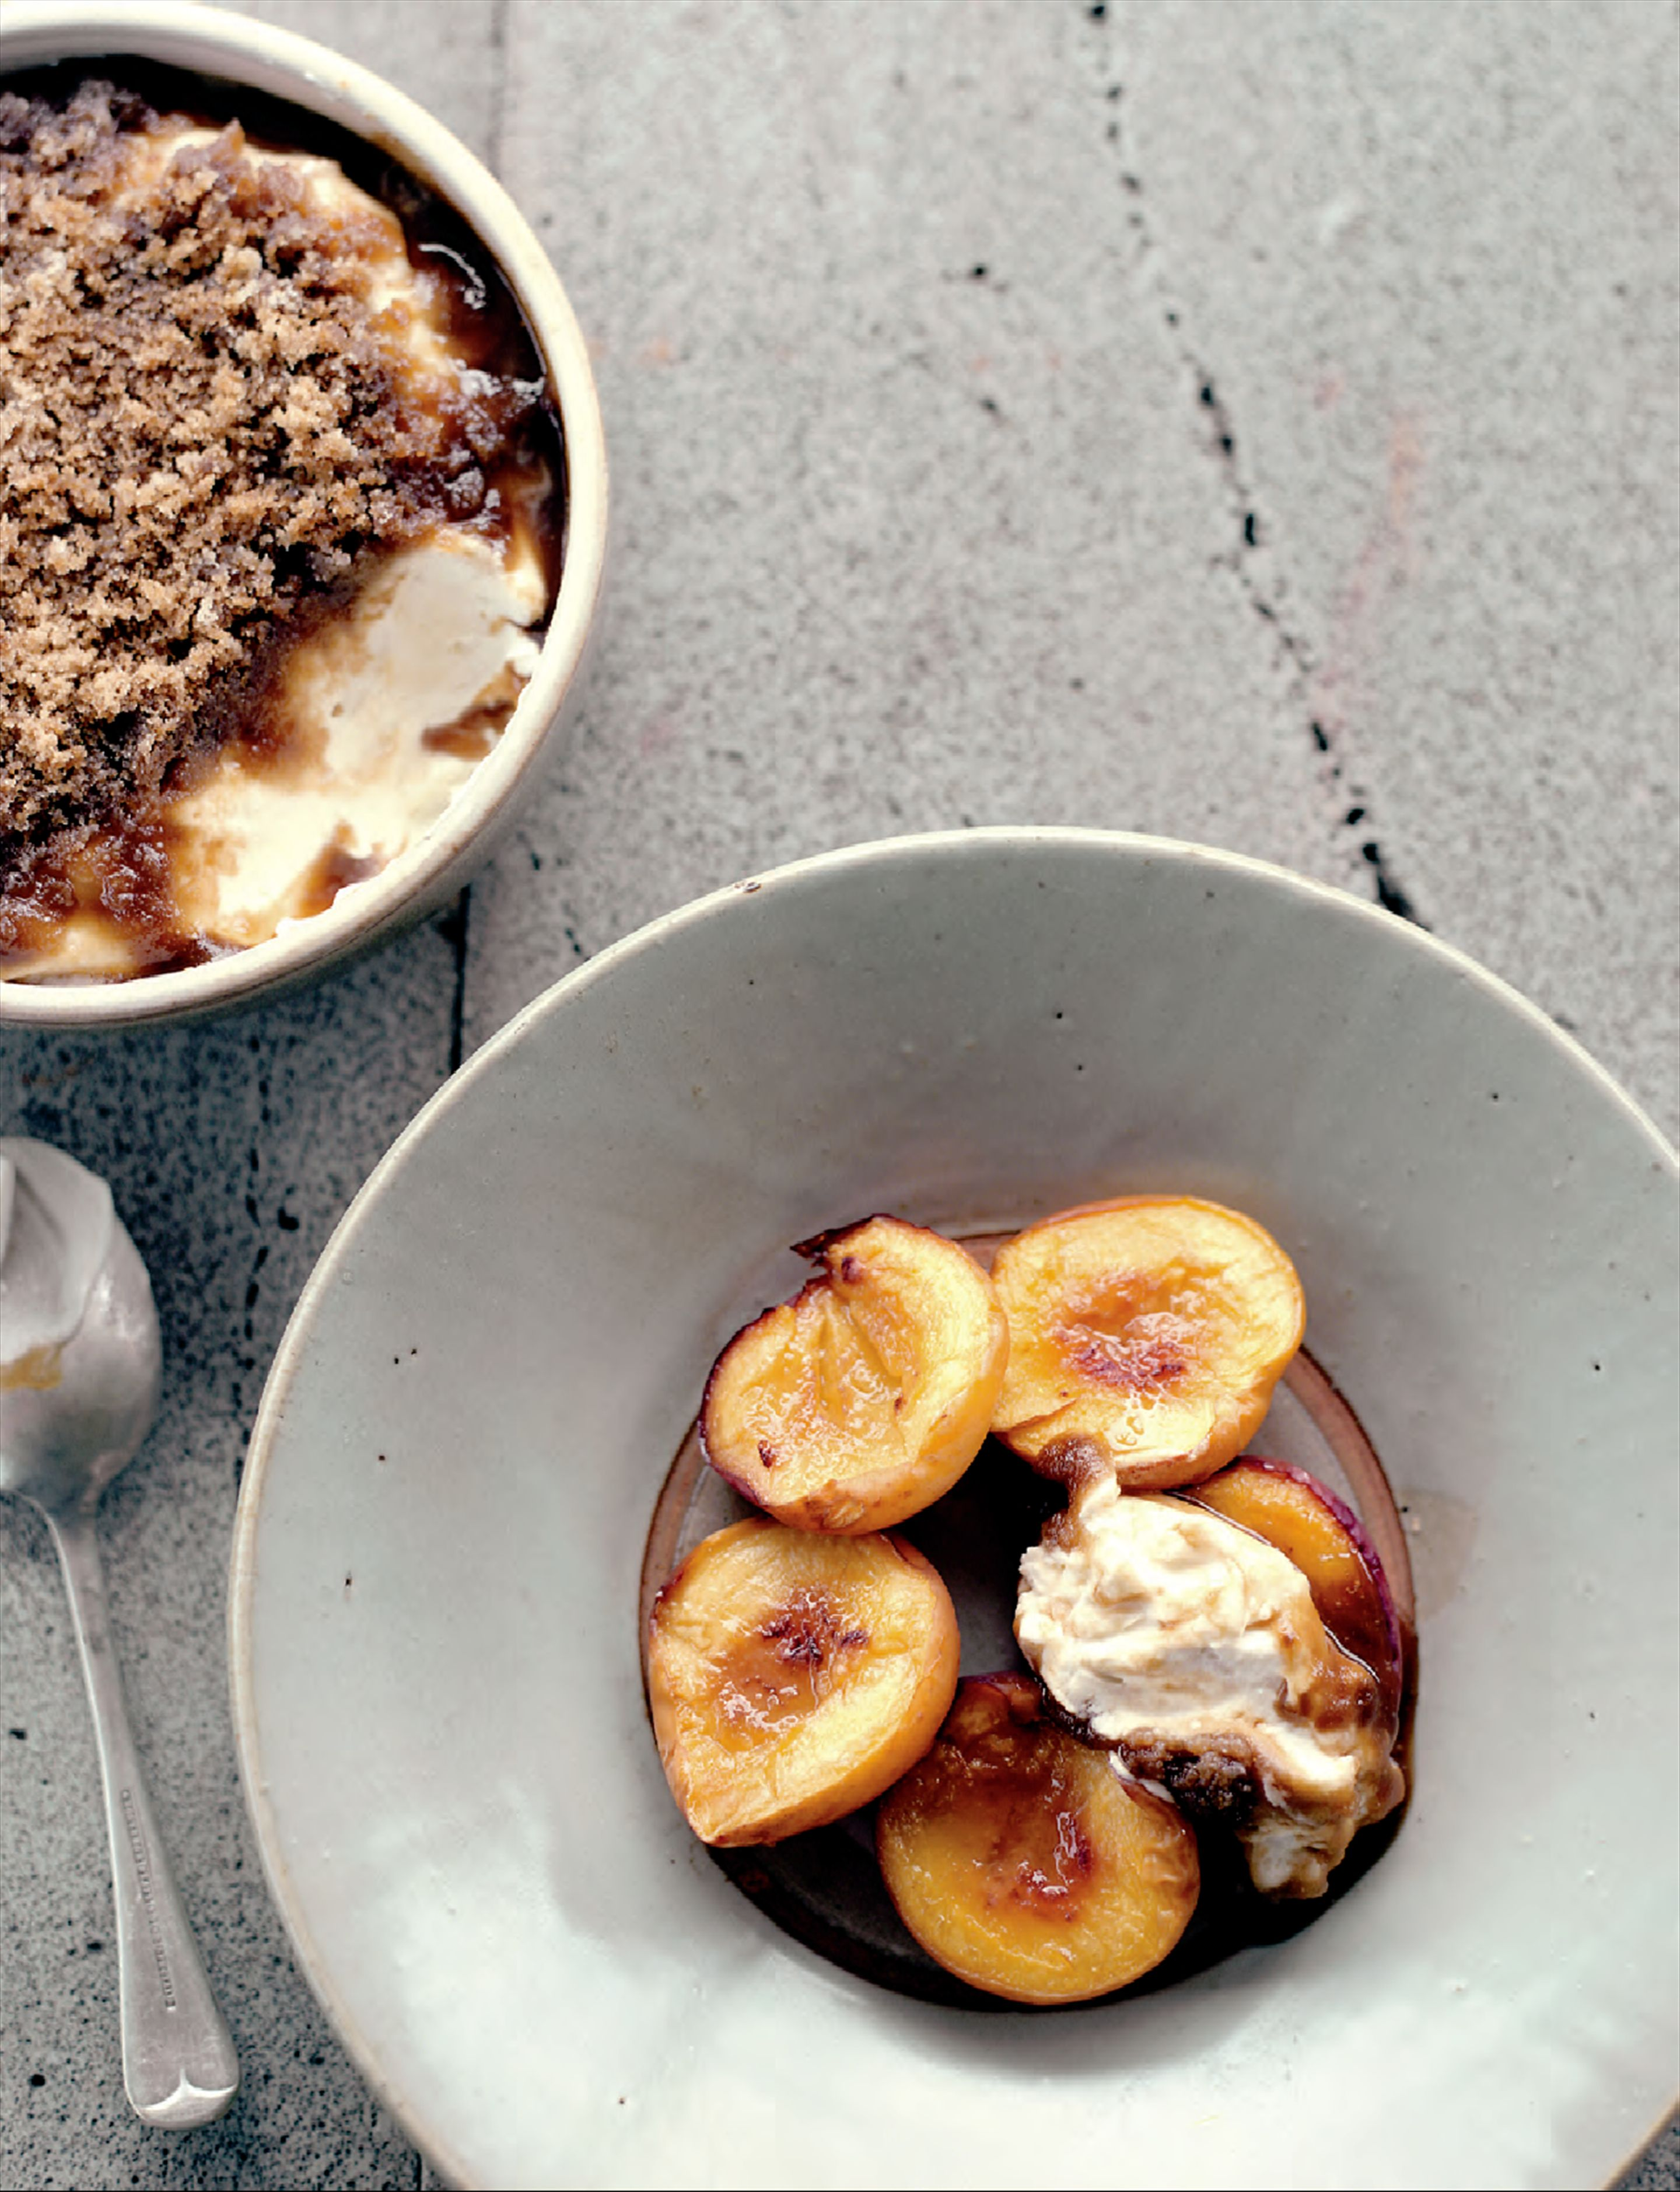 Slow-roasted nectarines with yoghurt, cream and brown sugar